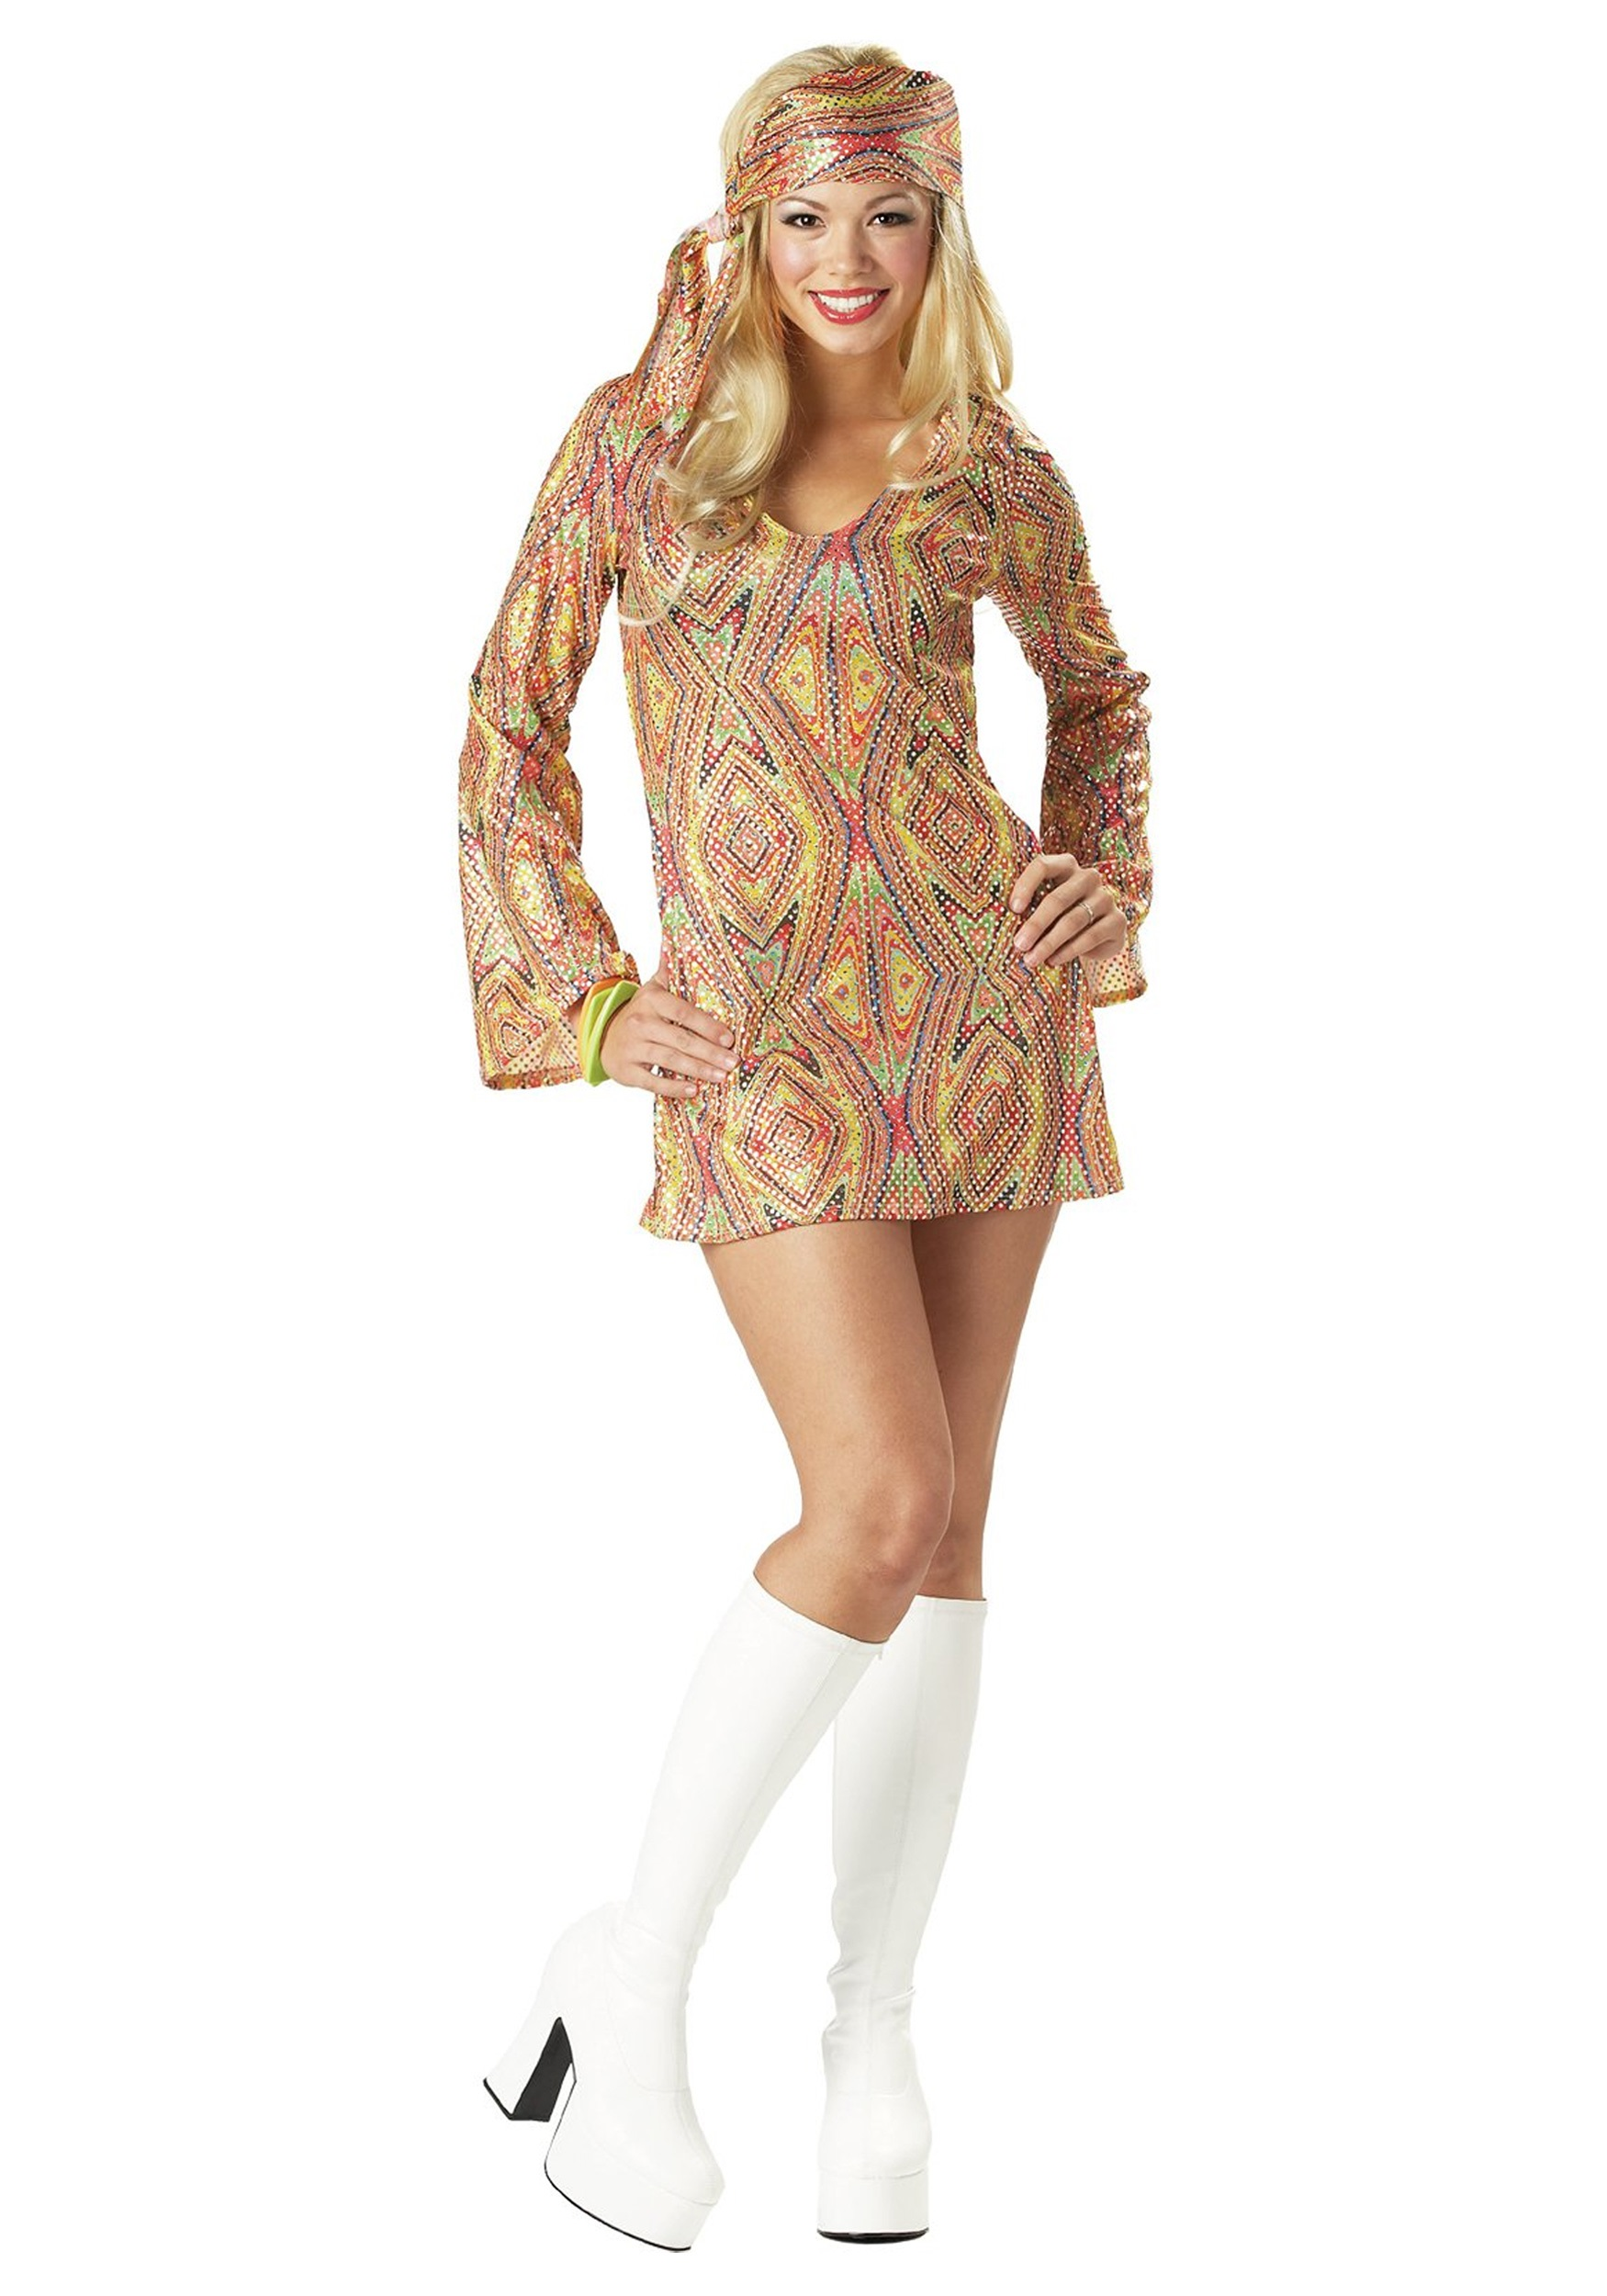 299cea4a474 Disco   Hippie Costume Ideas - 60s and 70s Halloween Costumes